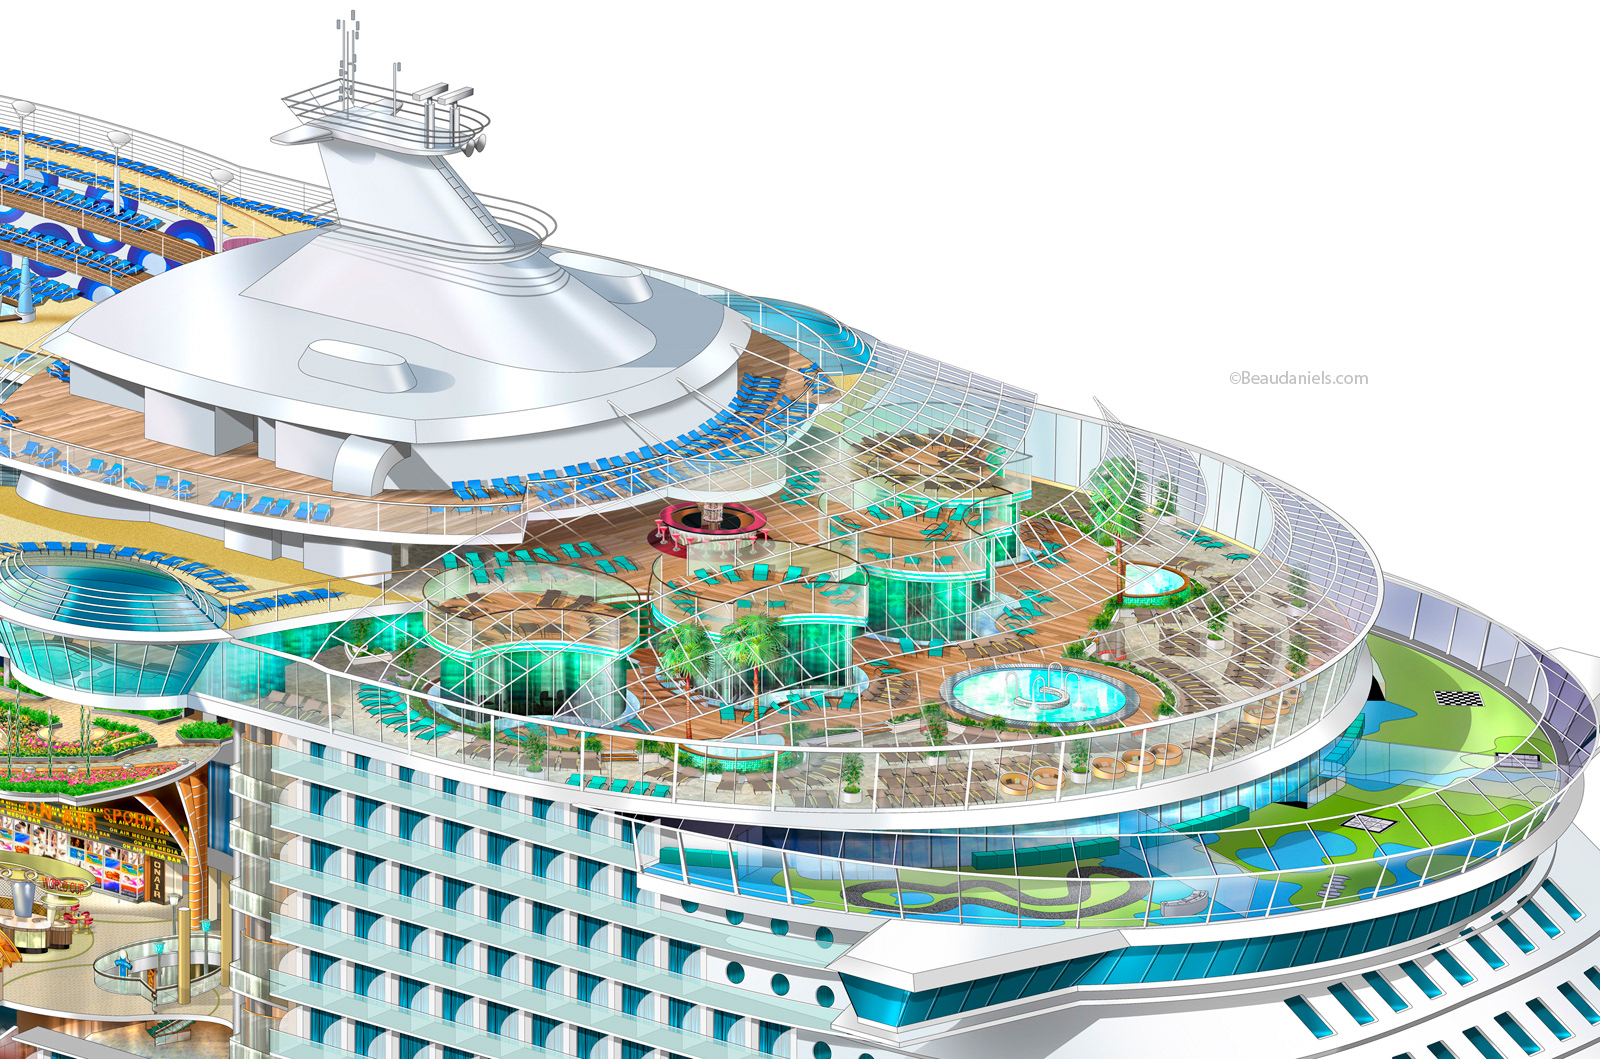 Royal Caribbean Cruise Line Cutaway To Show Solarium Rendered In Adobe Photoshop